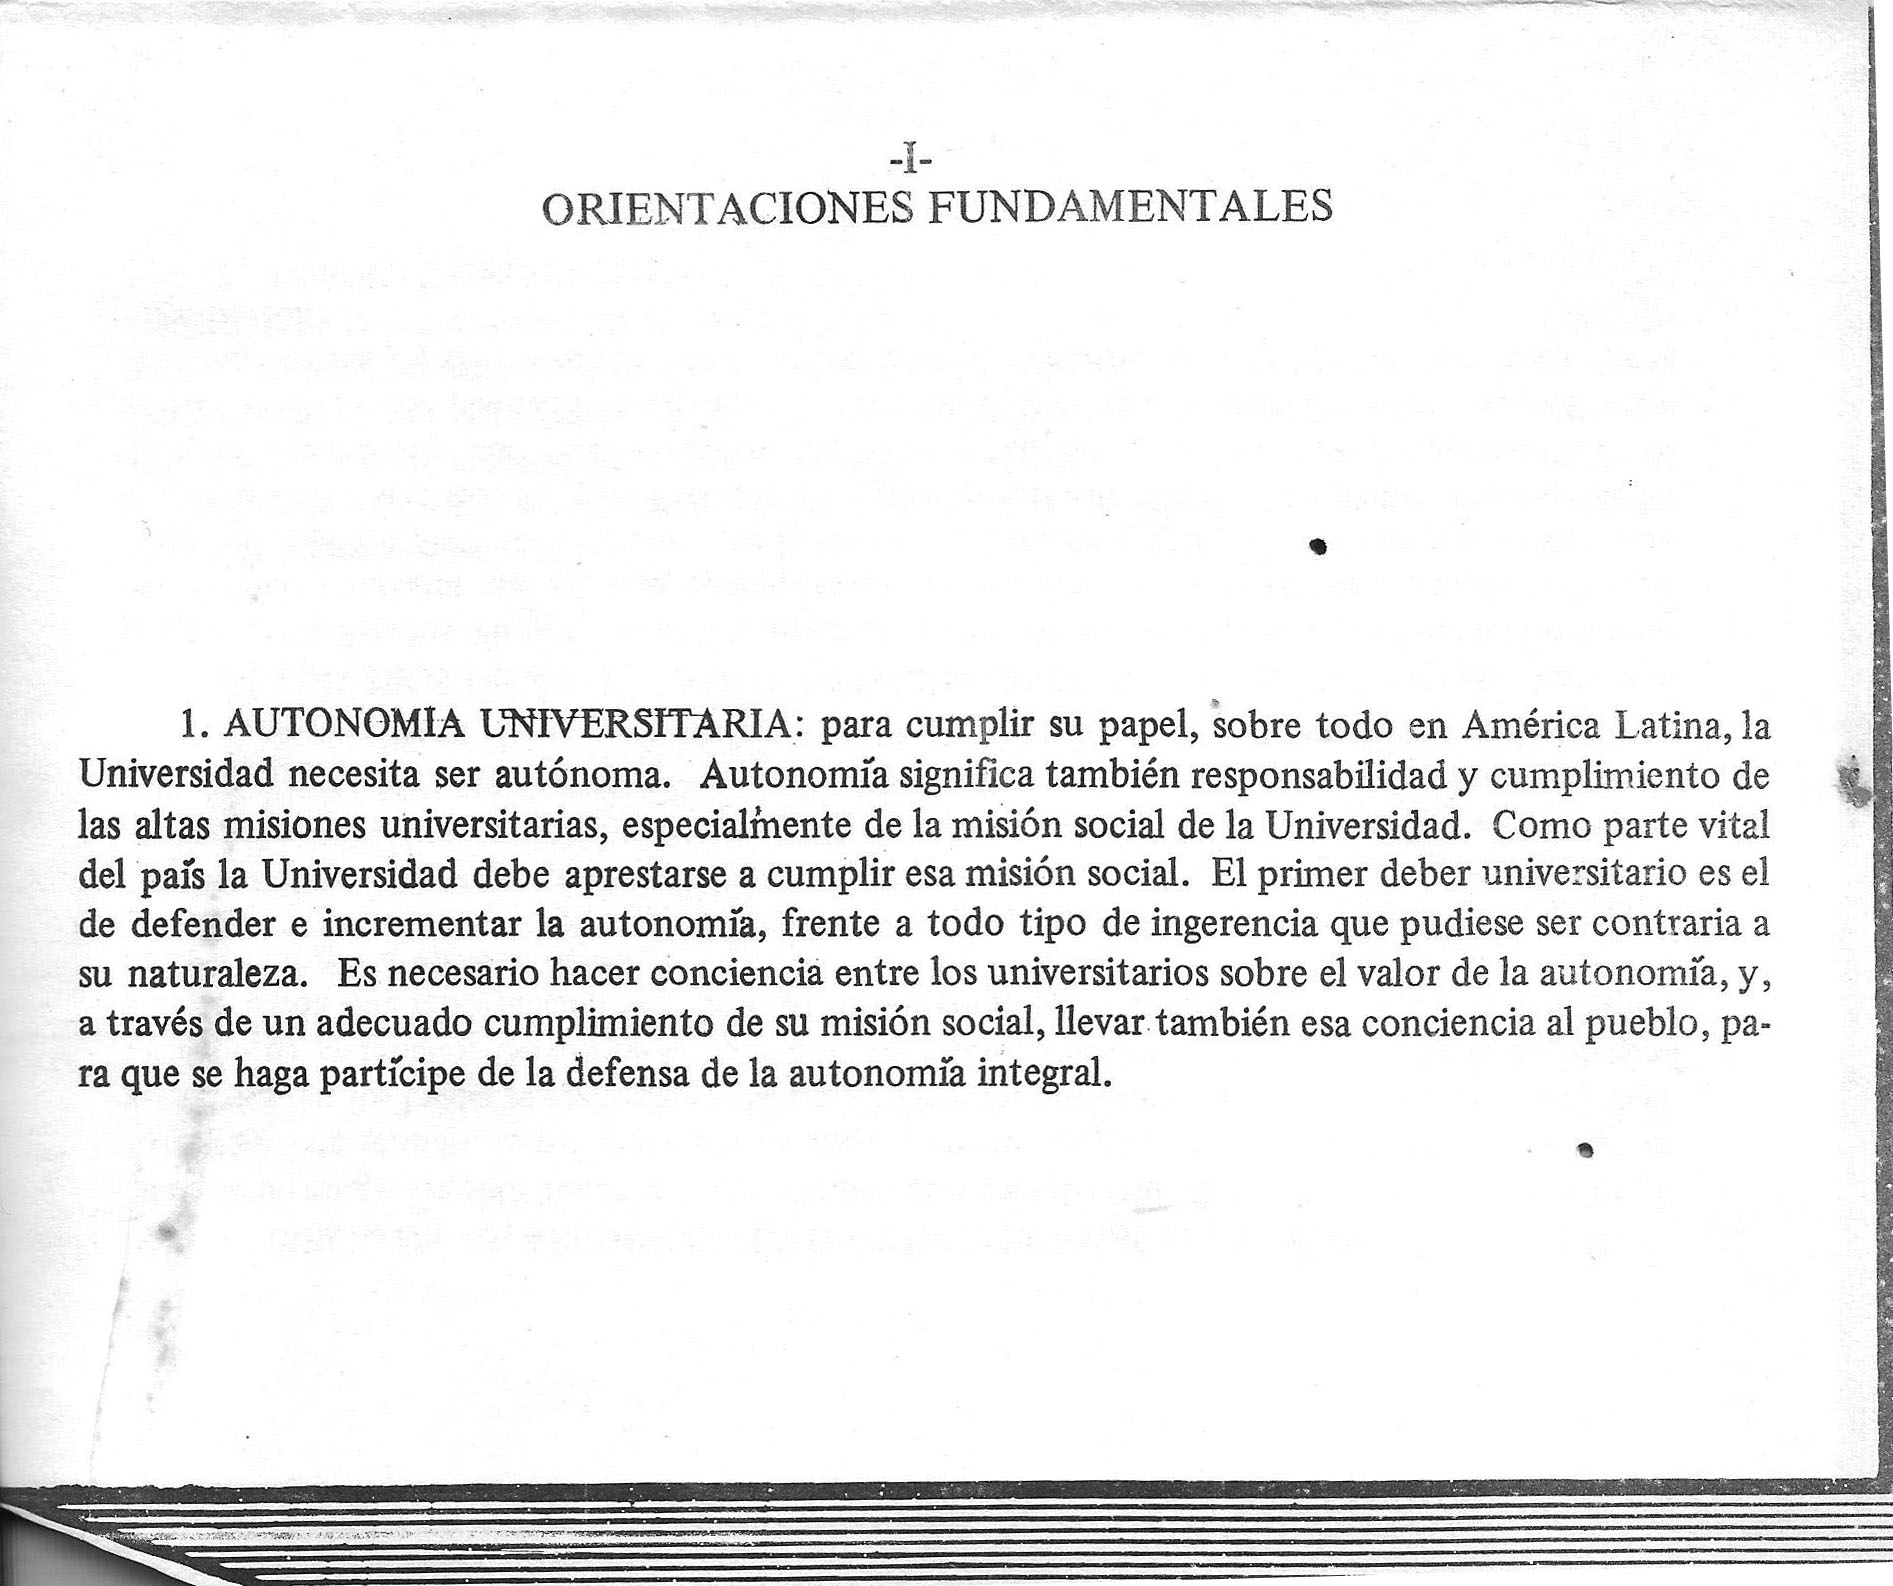 BASIC GUIDELINES  1. UNIVERSITY AUTONOMY: To fulfill its role, especially in Latin America, the University needs to be autonomous. Autonomy means independence, and having responsibility to deliver the high academic values of the University, including its social objectives. Because of the important role that the it plays in the country, the University must prepare itself to fulfill that social mission. The University's first duty is to defend and increase its autonomy against all types of interference that might be contrary to its nature. It is necessary to raise awareness among its students about the value of the University's autonomy, and through it's social work, to bring that awareness to the rest of the population, so that they can, as well, participate inits defense.